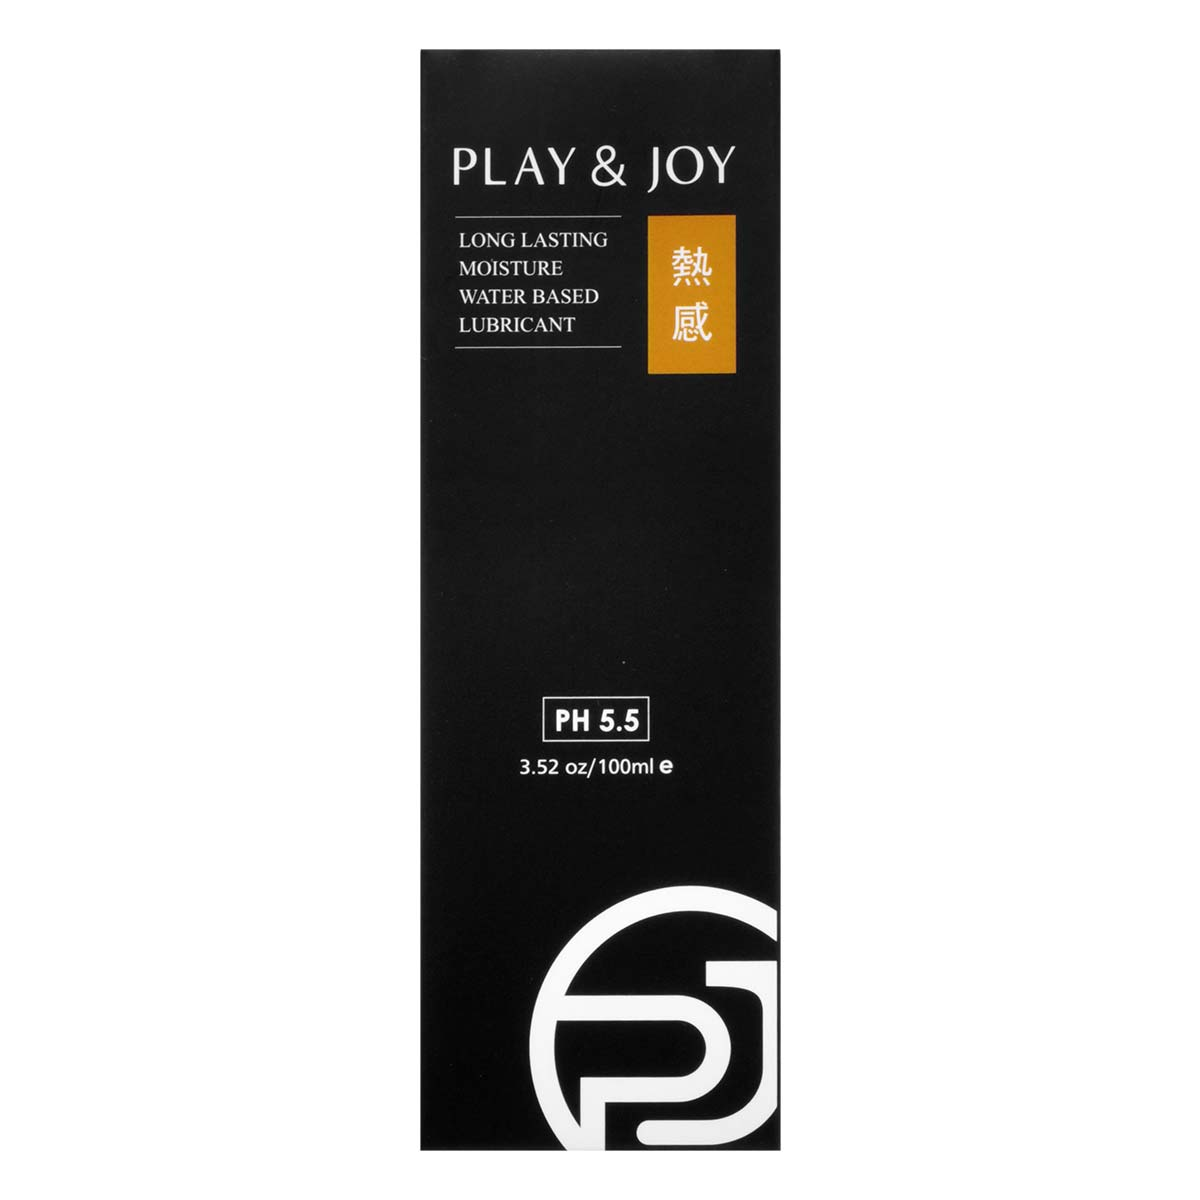 PLAY & JOY Hot & Sexy 100ml Water-based Lubricant